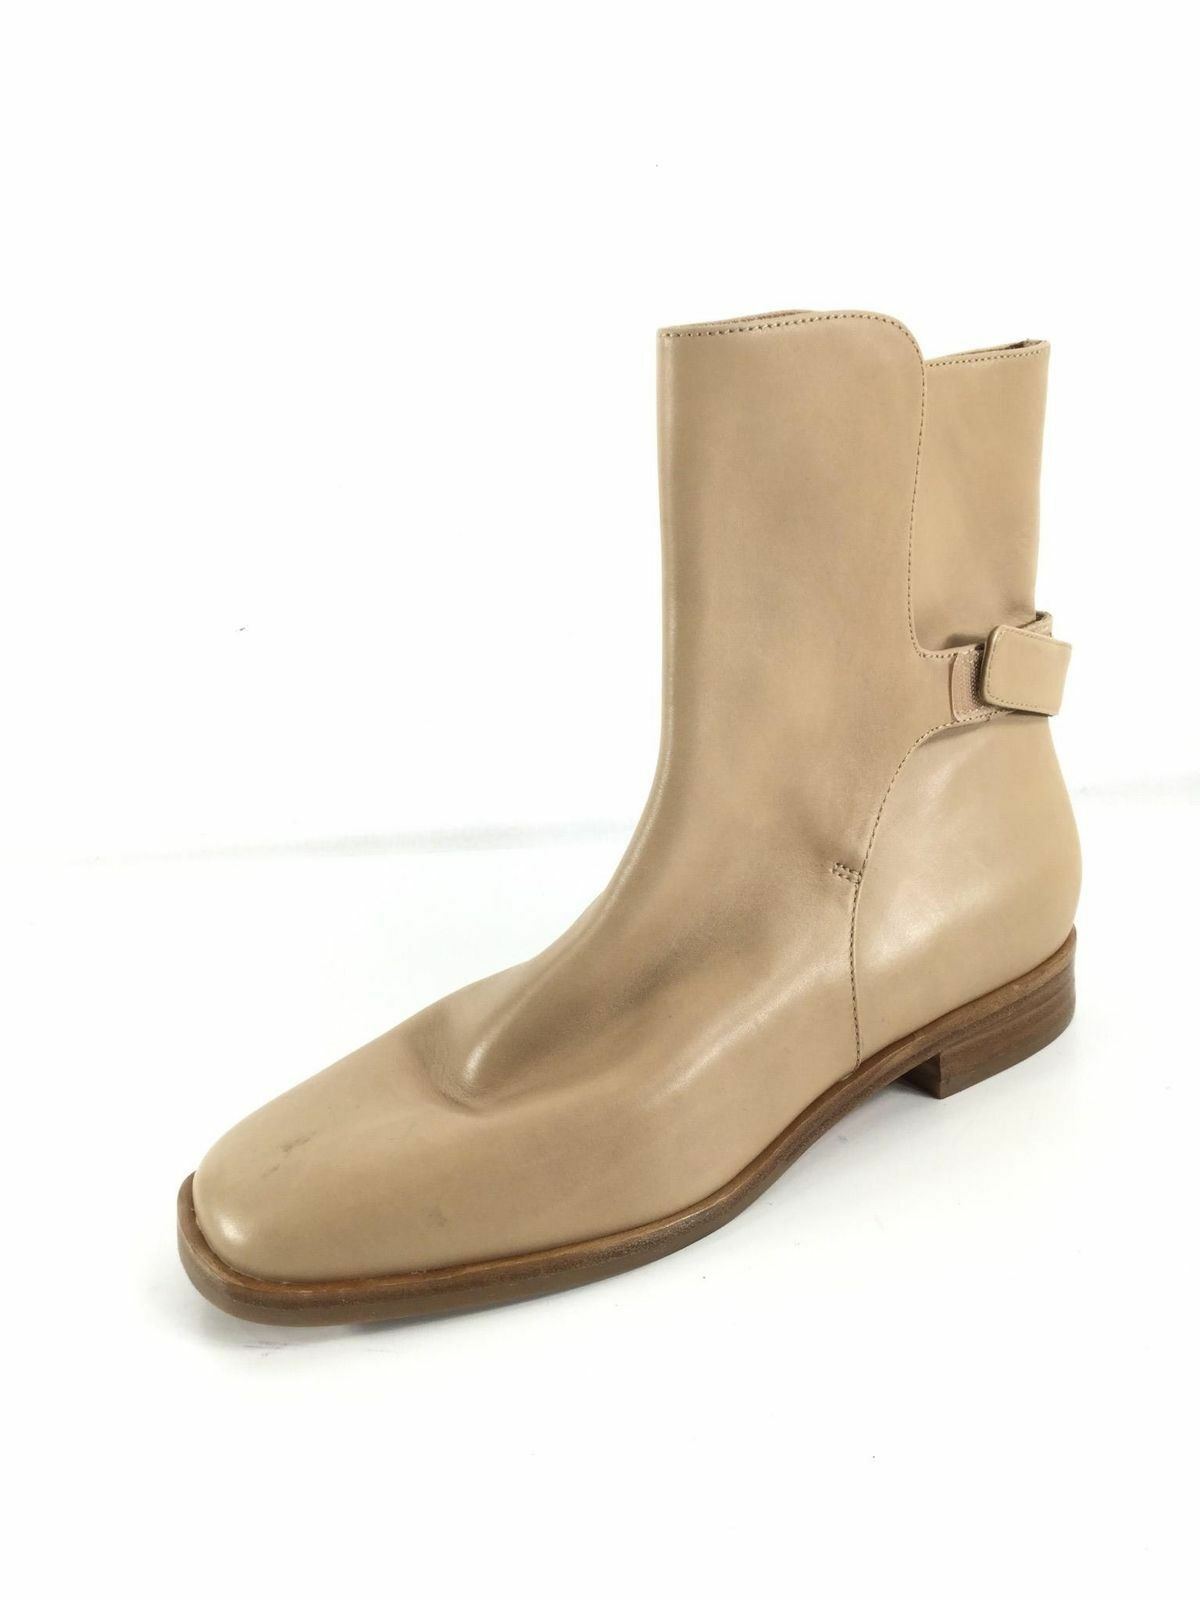 NEW VIA SPIGA VAUGHAN NUDE LEATHER ANKLE BOOTS WOMEN SIZE 6.5 M  498